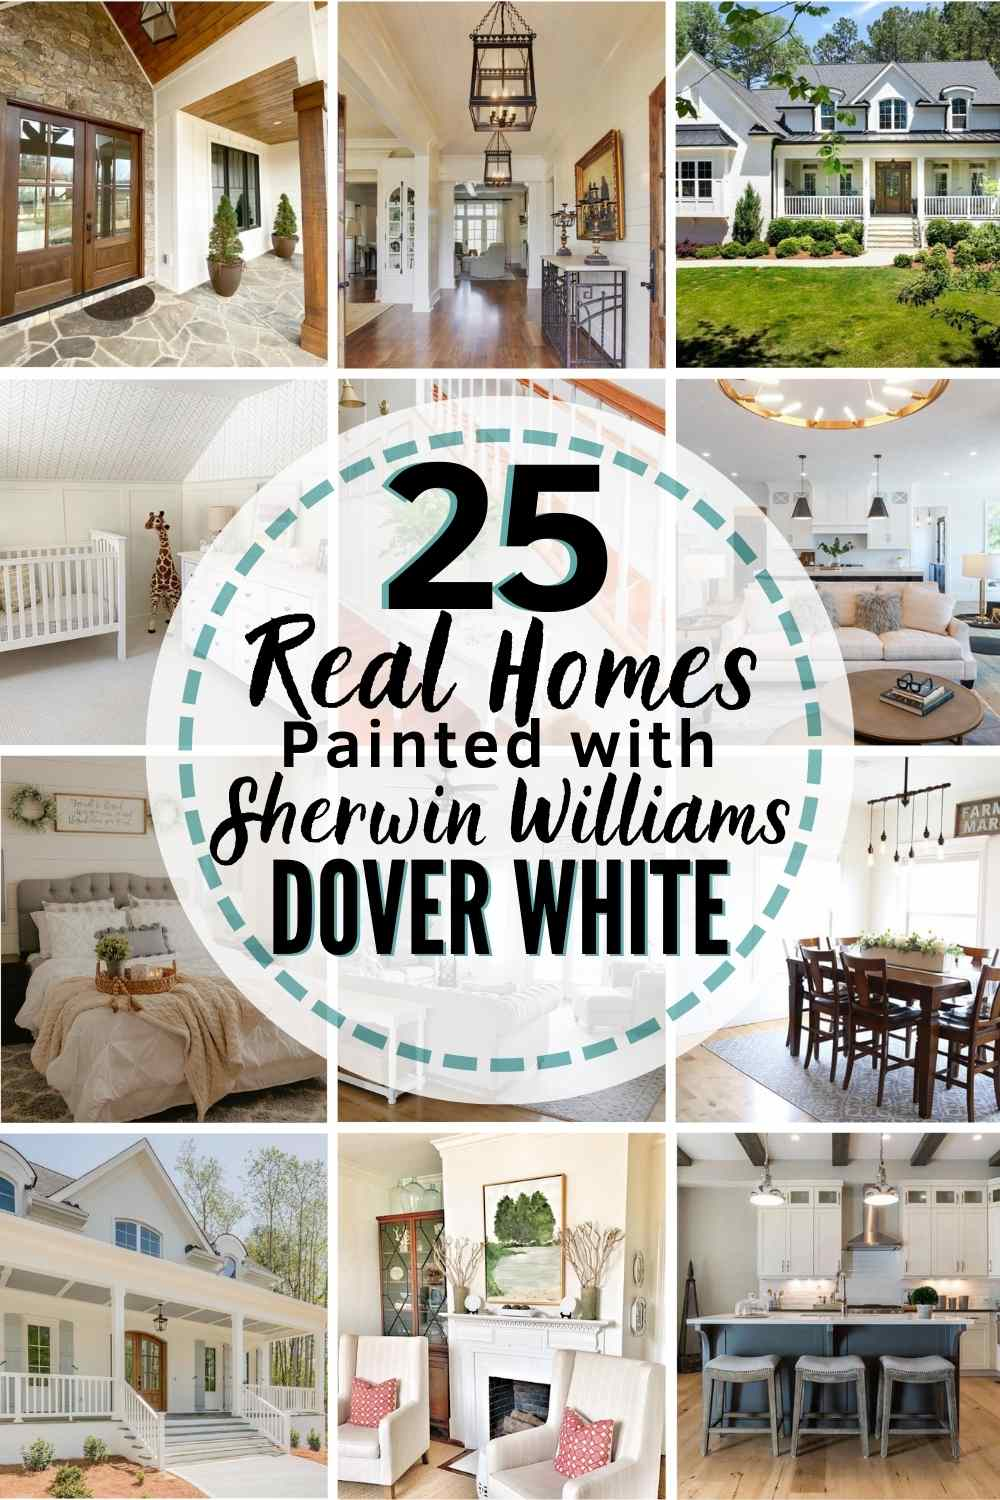 12 homes painted with sherwin williams dover white in a grid. text: 25 real homes painted with sherwin williams dover white